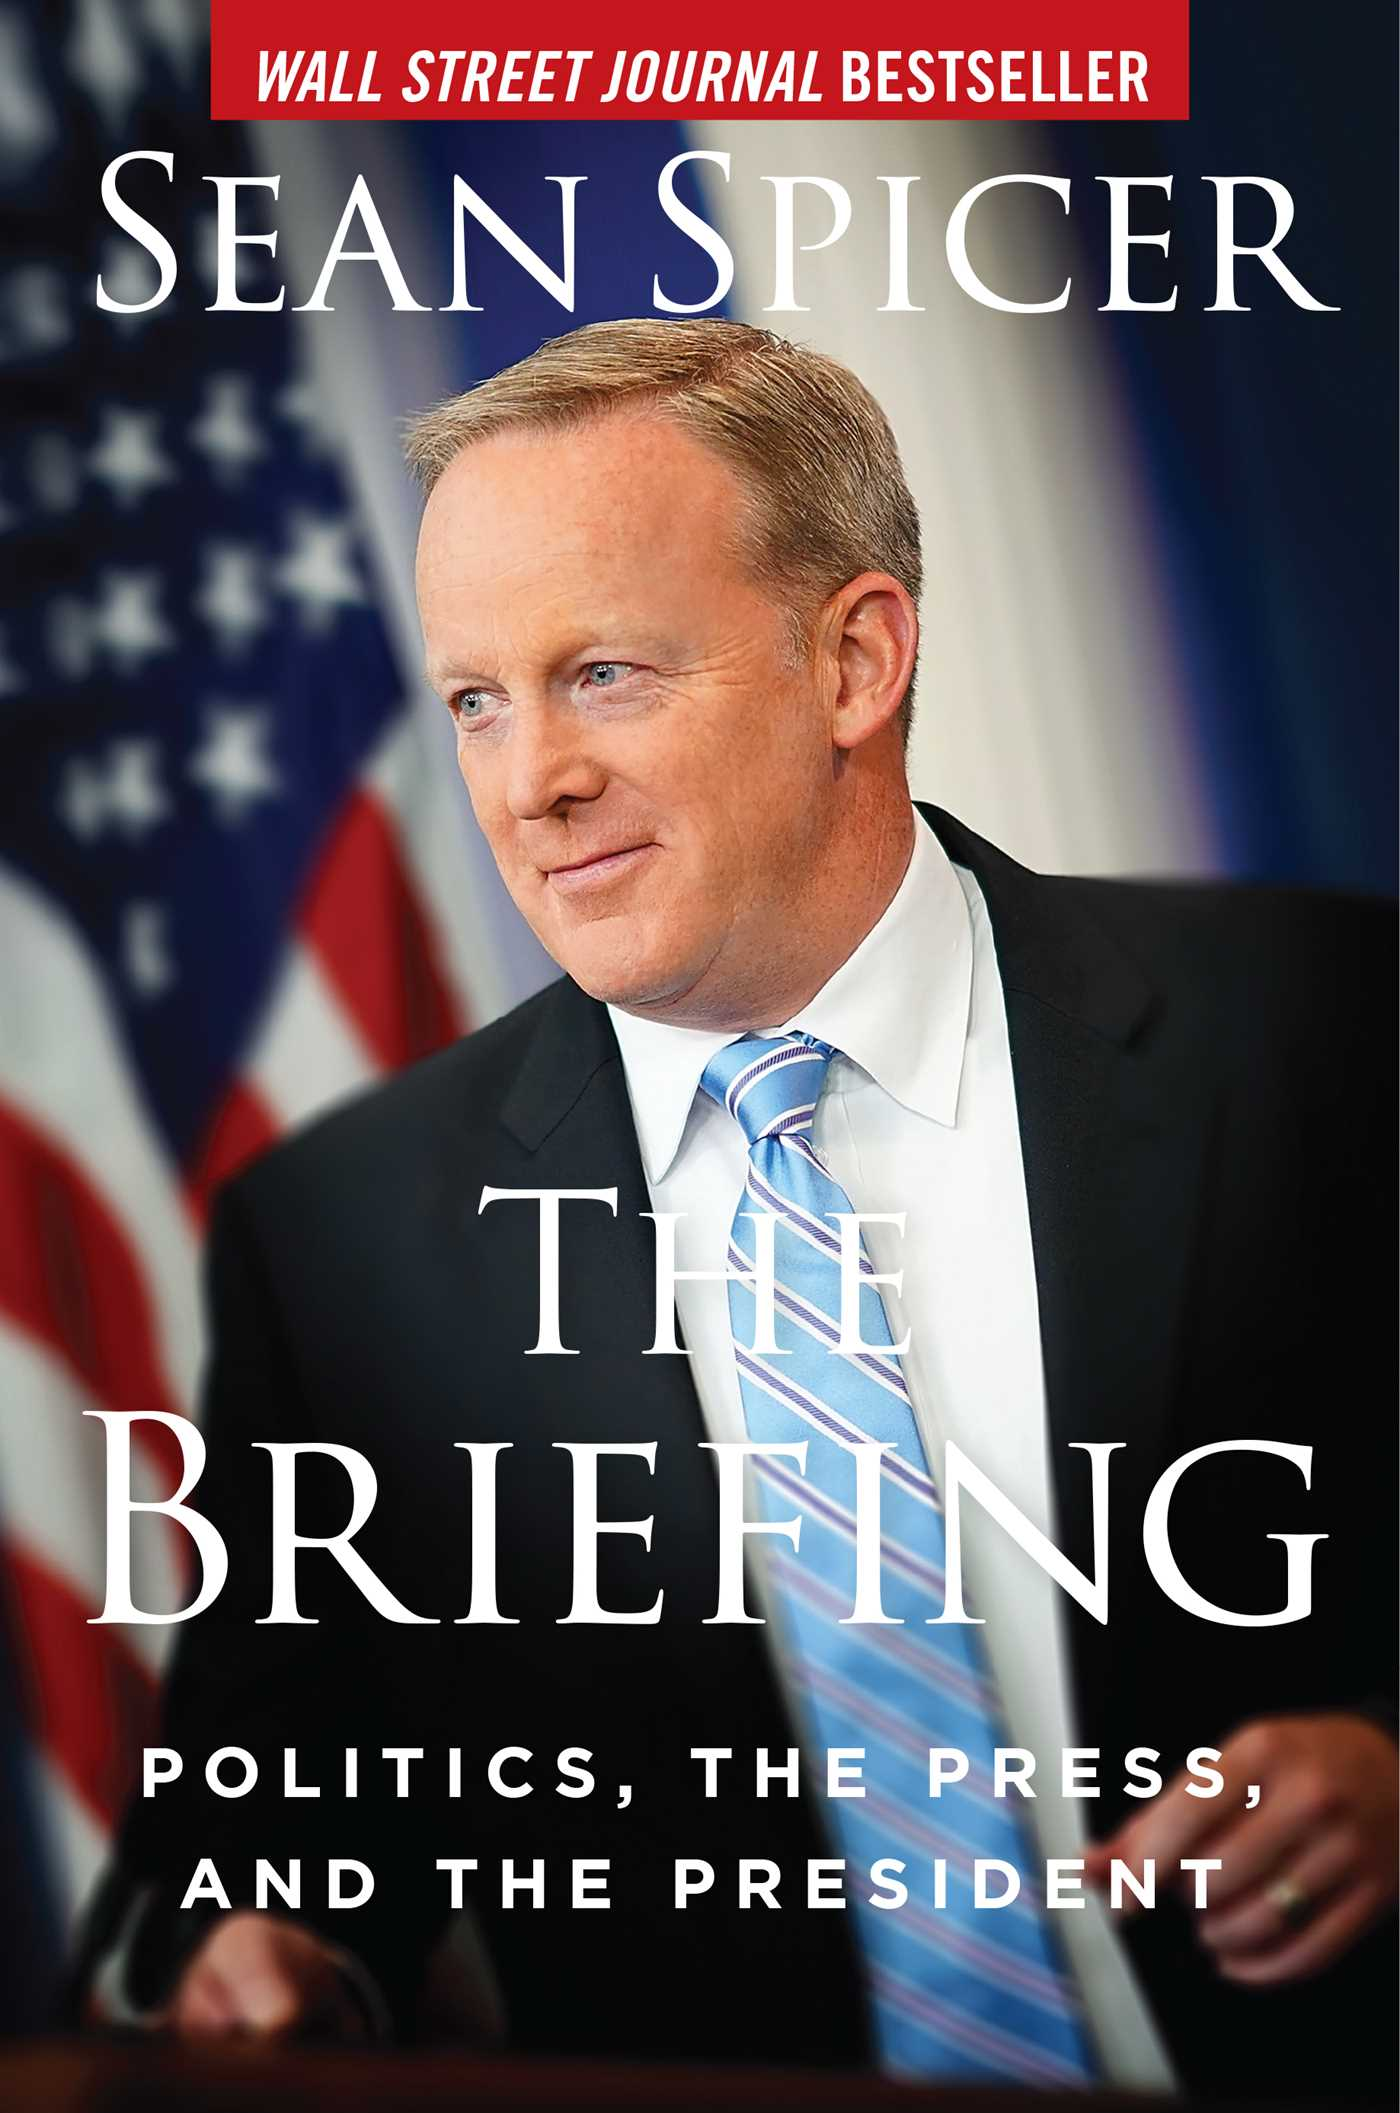 The Briefing Politics, the Press, and the President